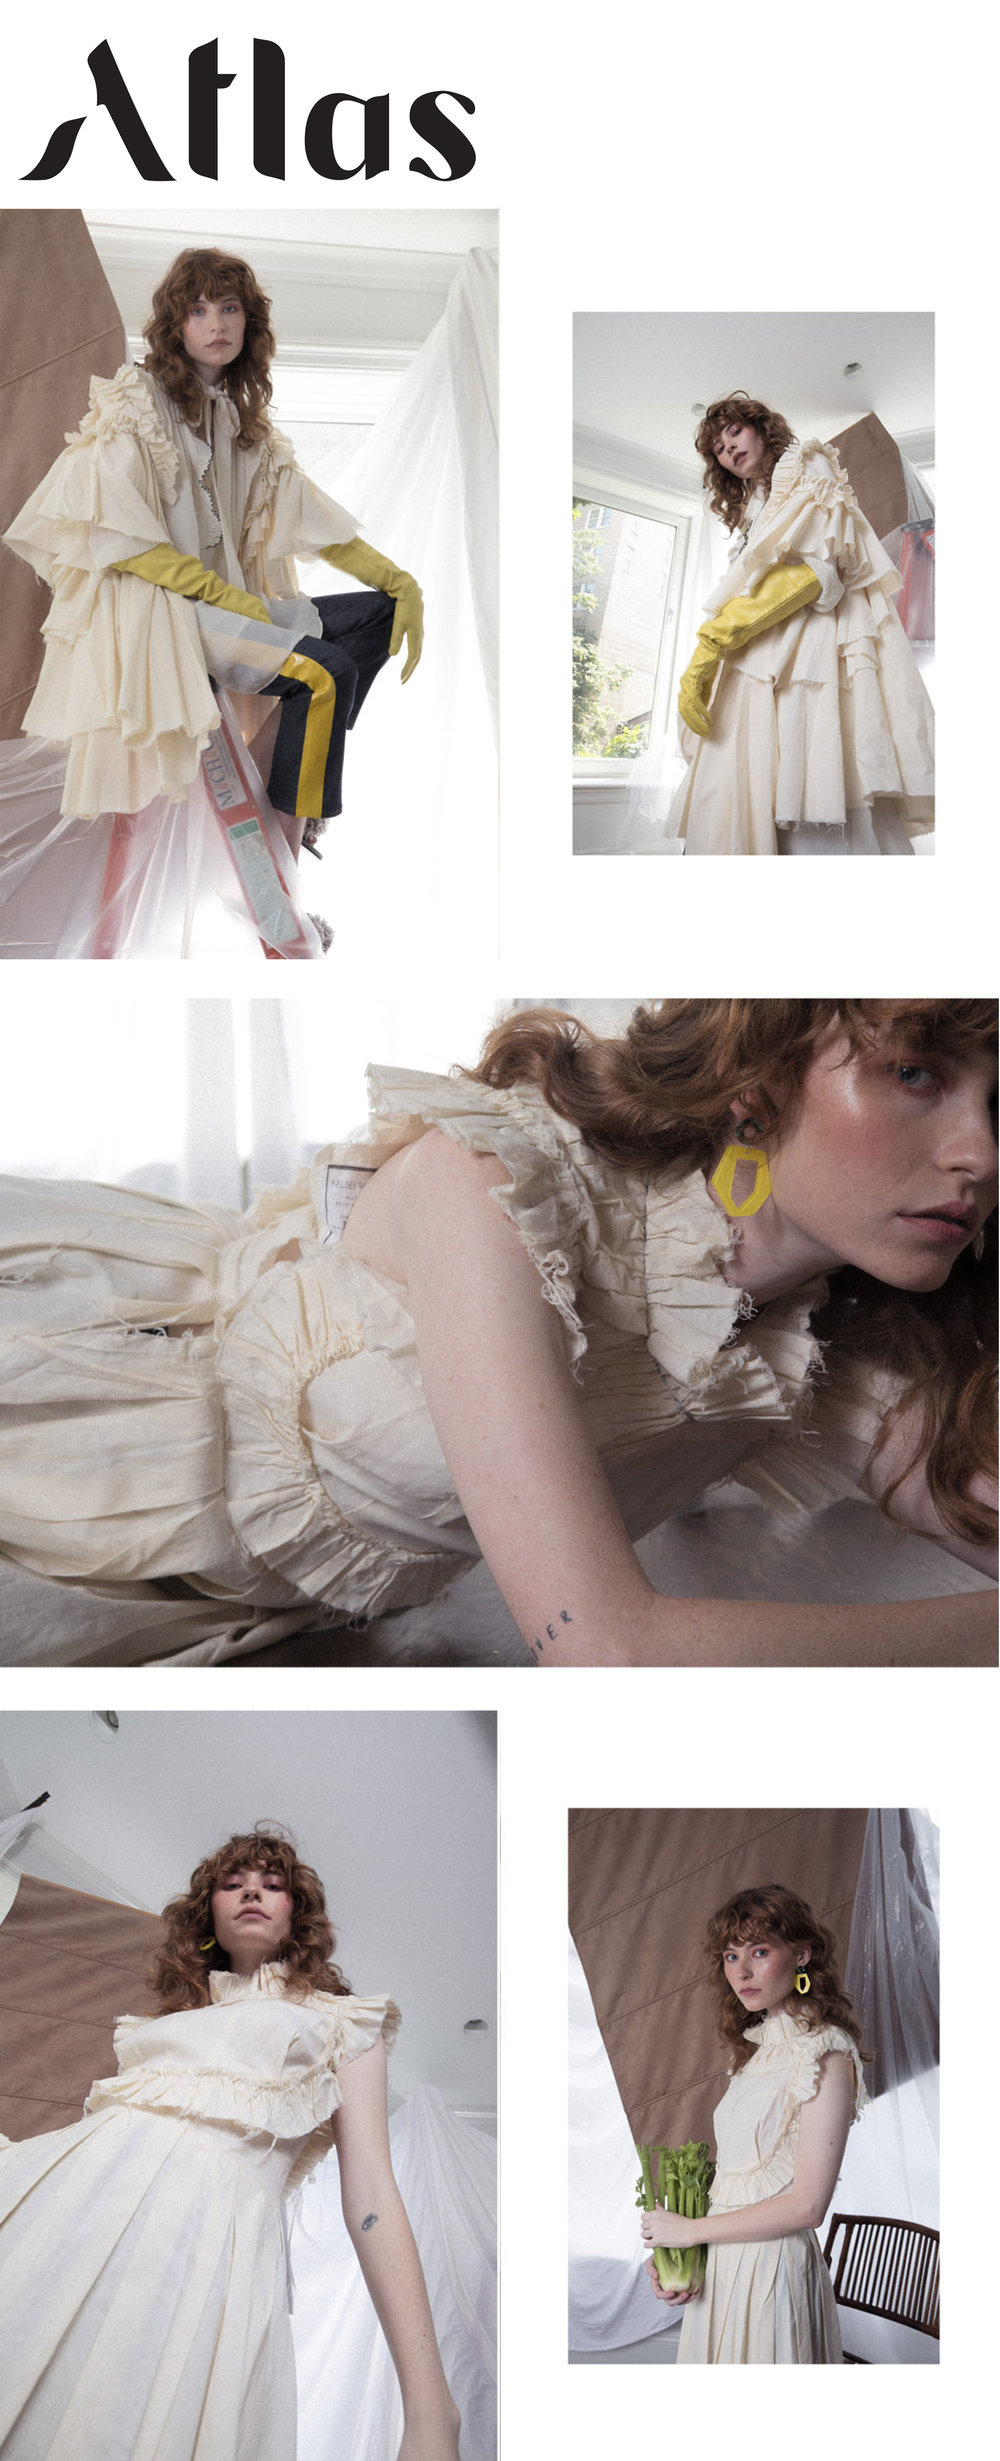 atlas magazine fashion editorial featuring kelsey randall muslin dresses  Photographer / Coni Tarallo @coni.tarallo Art Director/ Ani Bergero @anibergero Stylist / Barbara Velez @barbbvelez MUA / Claudia Oyanedel @claudiaoyanedel Hair Stylist / Serina Takei Model / Allison Ponthier @allisonponthier for Click Model NY